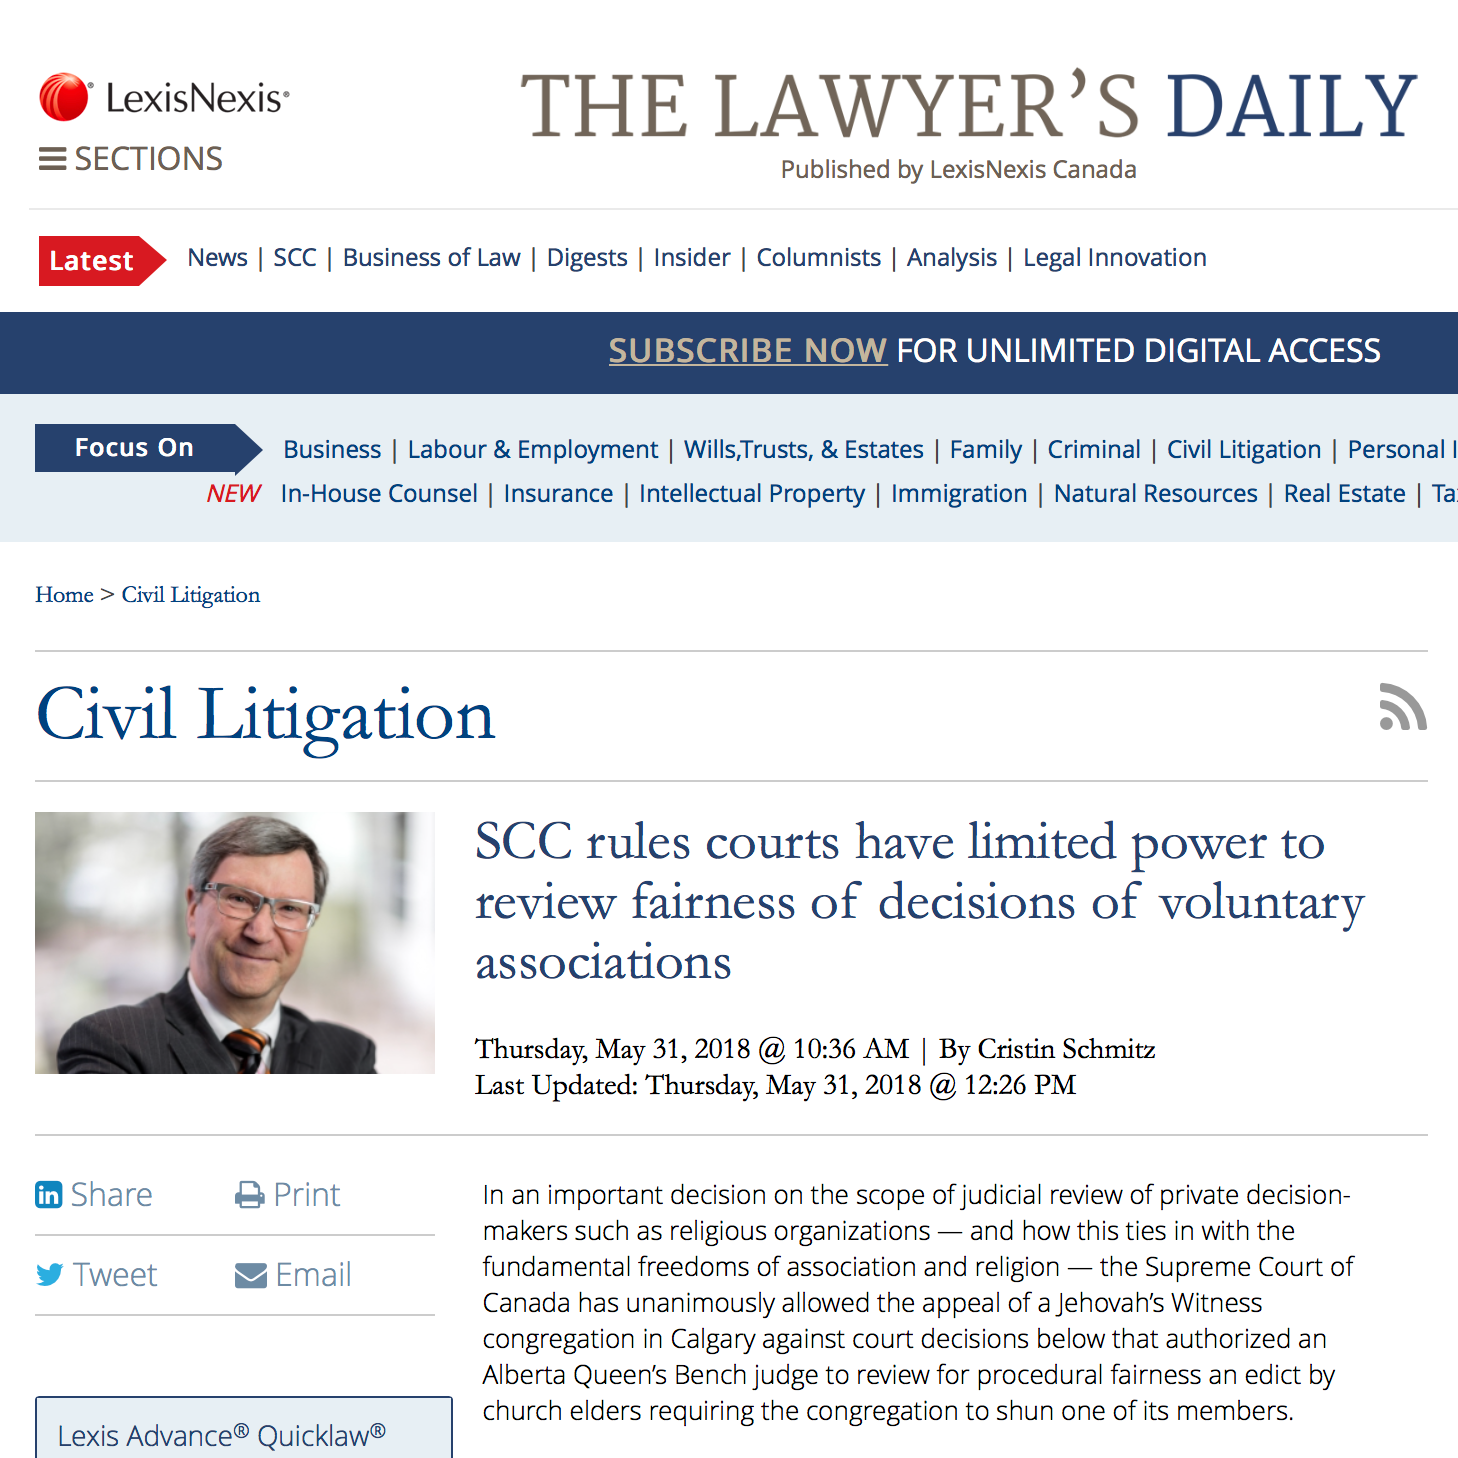 The Lawyer's Daily: - SCC rules courts have limited power to review fairness of decisions of voluntary associations